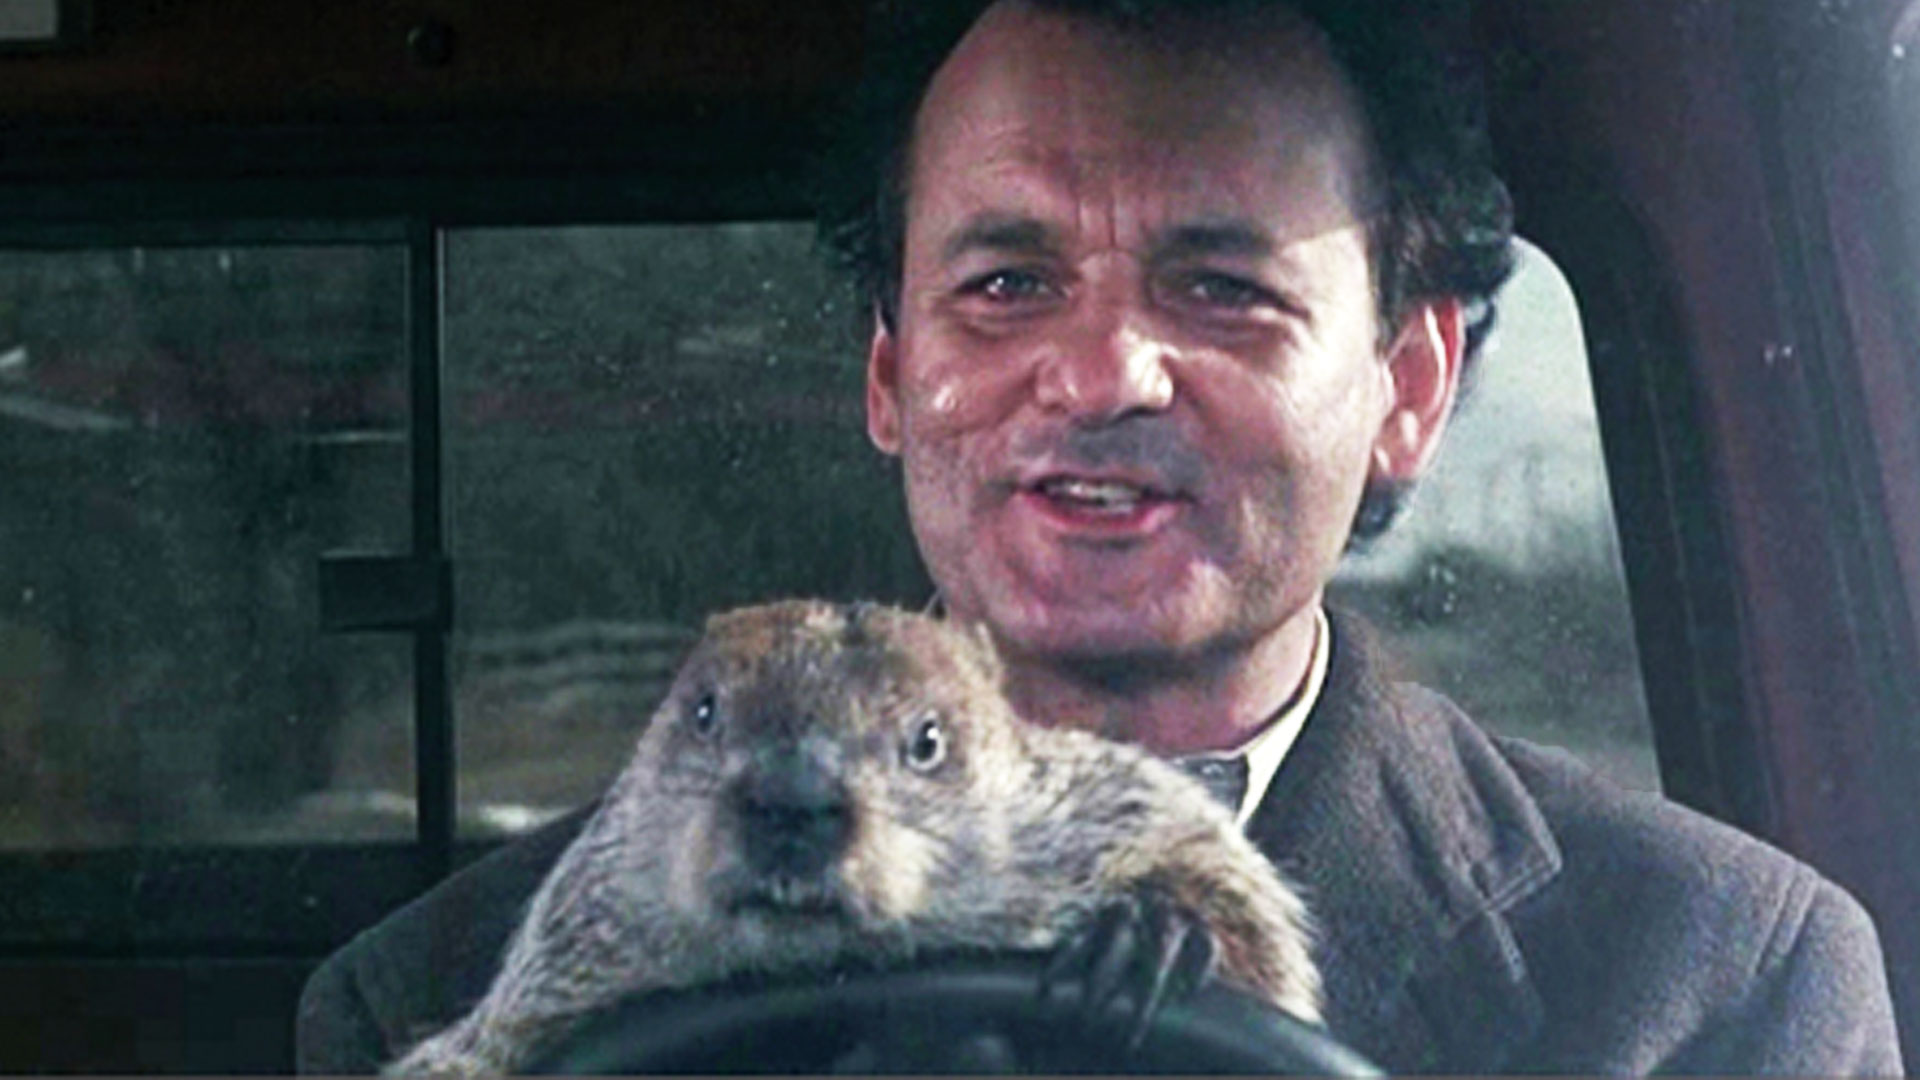 GROUNDHOG DAY - Some fun FACTS!